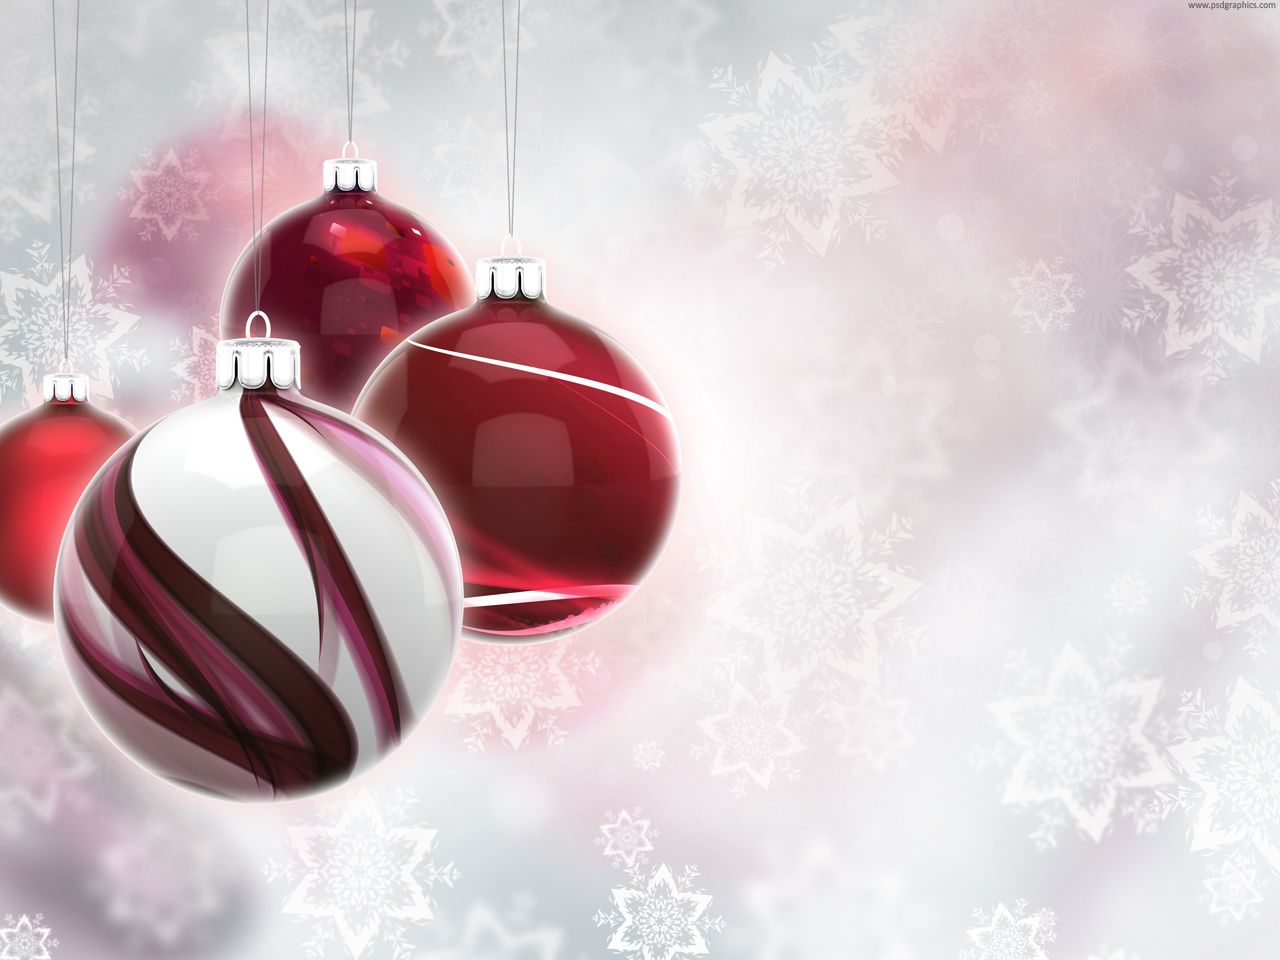 Red And White Glassy Christmas Balls On A Bright Background With